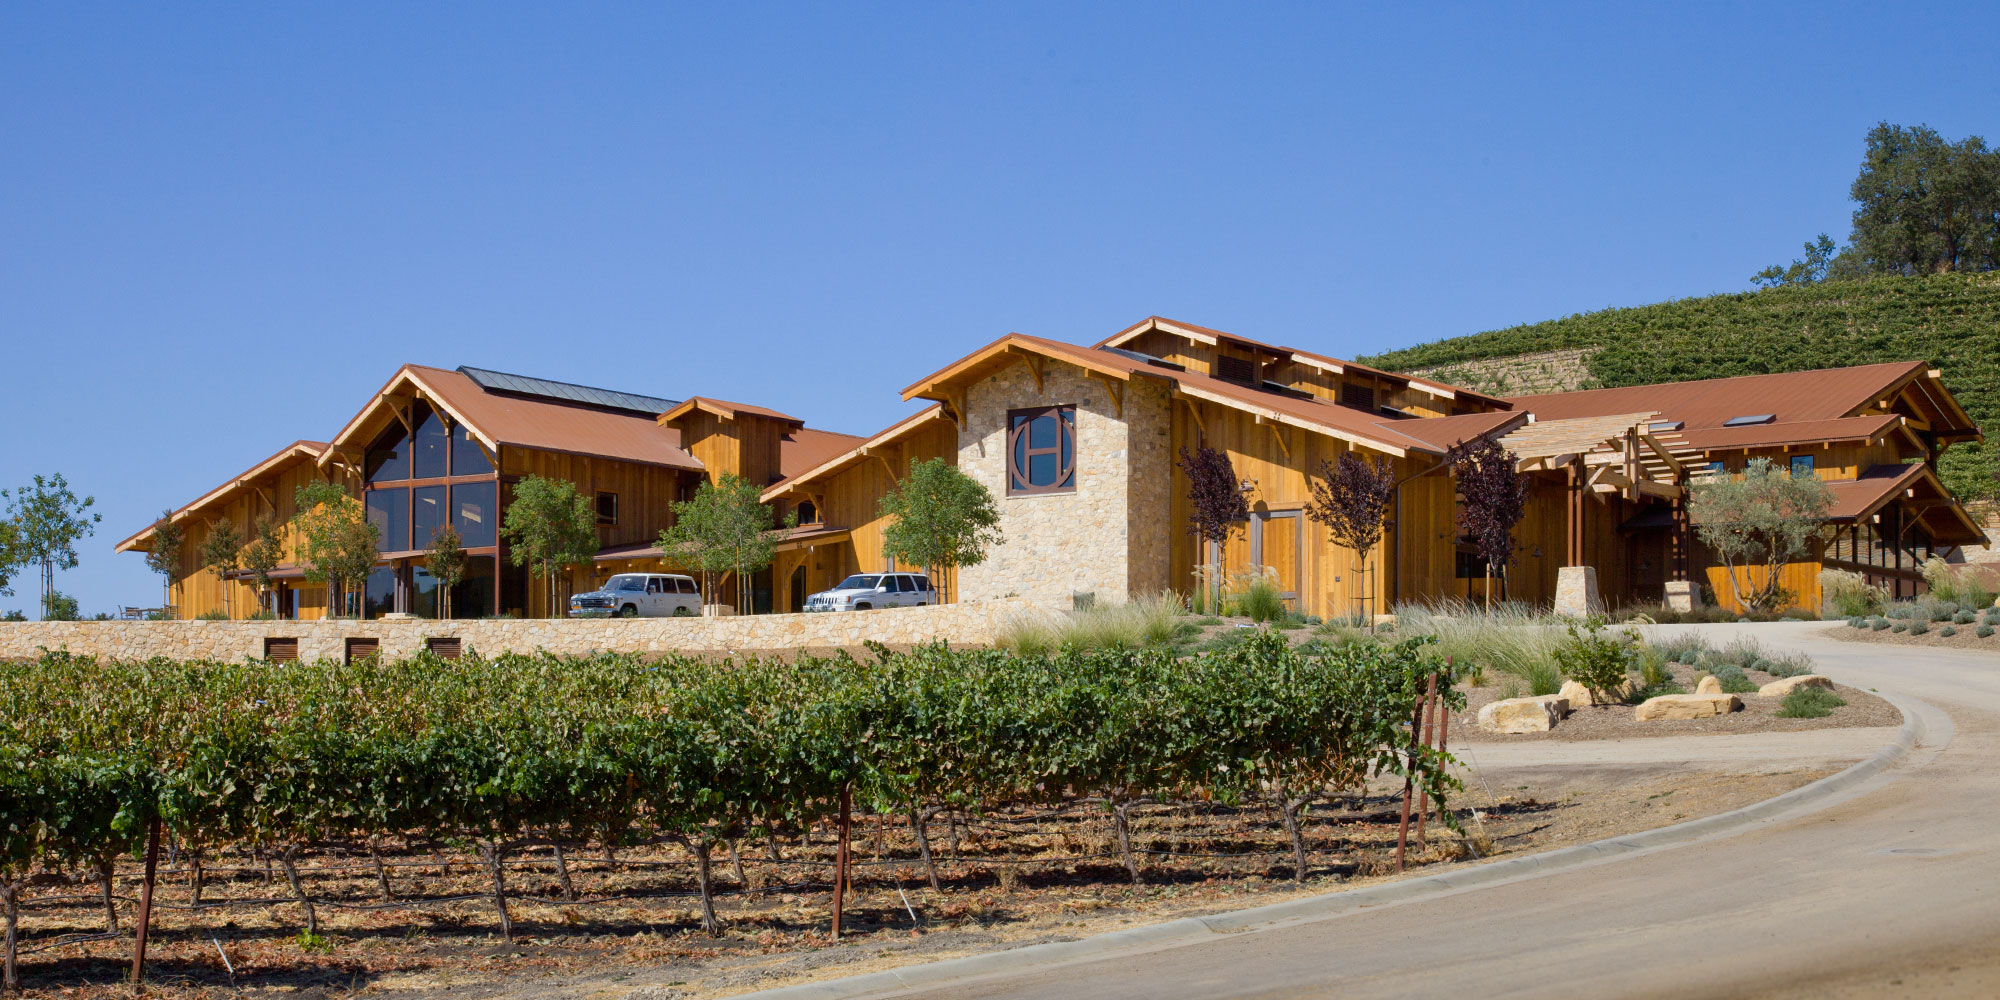 Windery Construction Company - Wine Cave Contractor - Halter Ranch Builder - JW Design and Construction